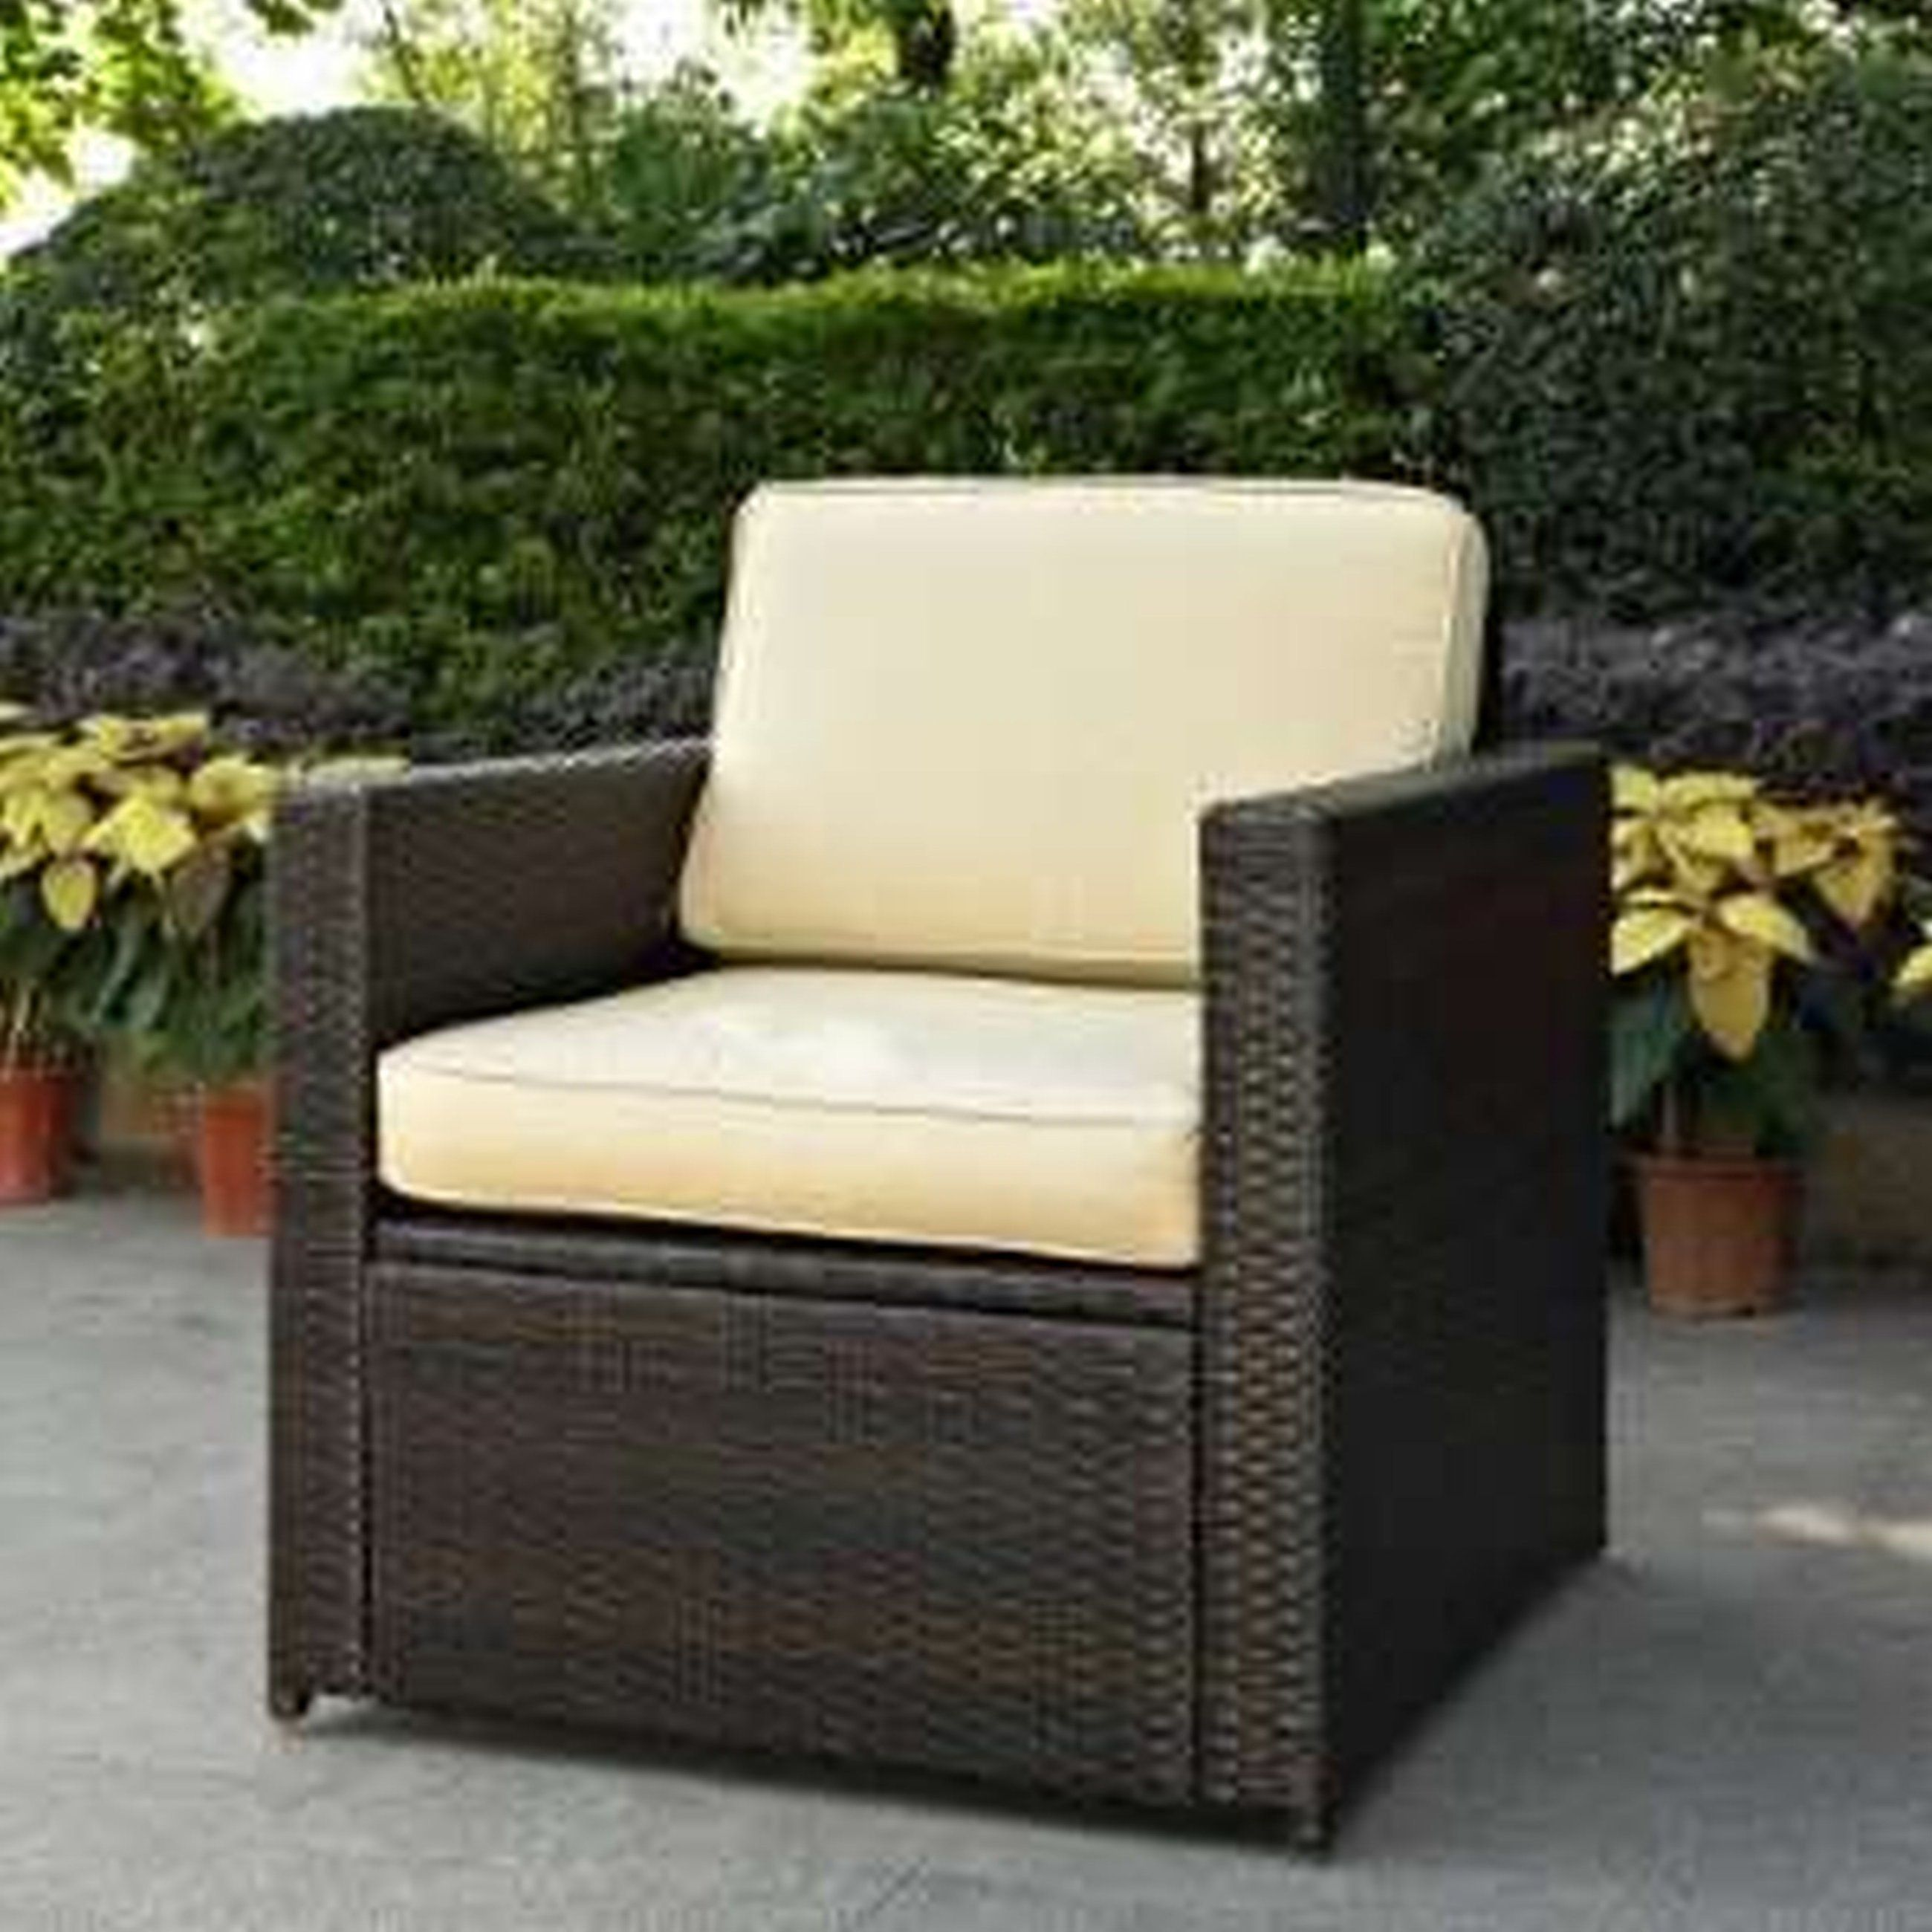 Garden Treasures Patio Furniture Replacement Cushions Wicker Chairs ...